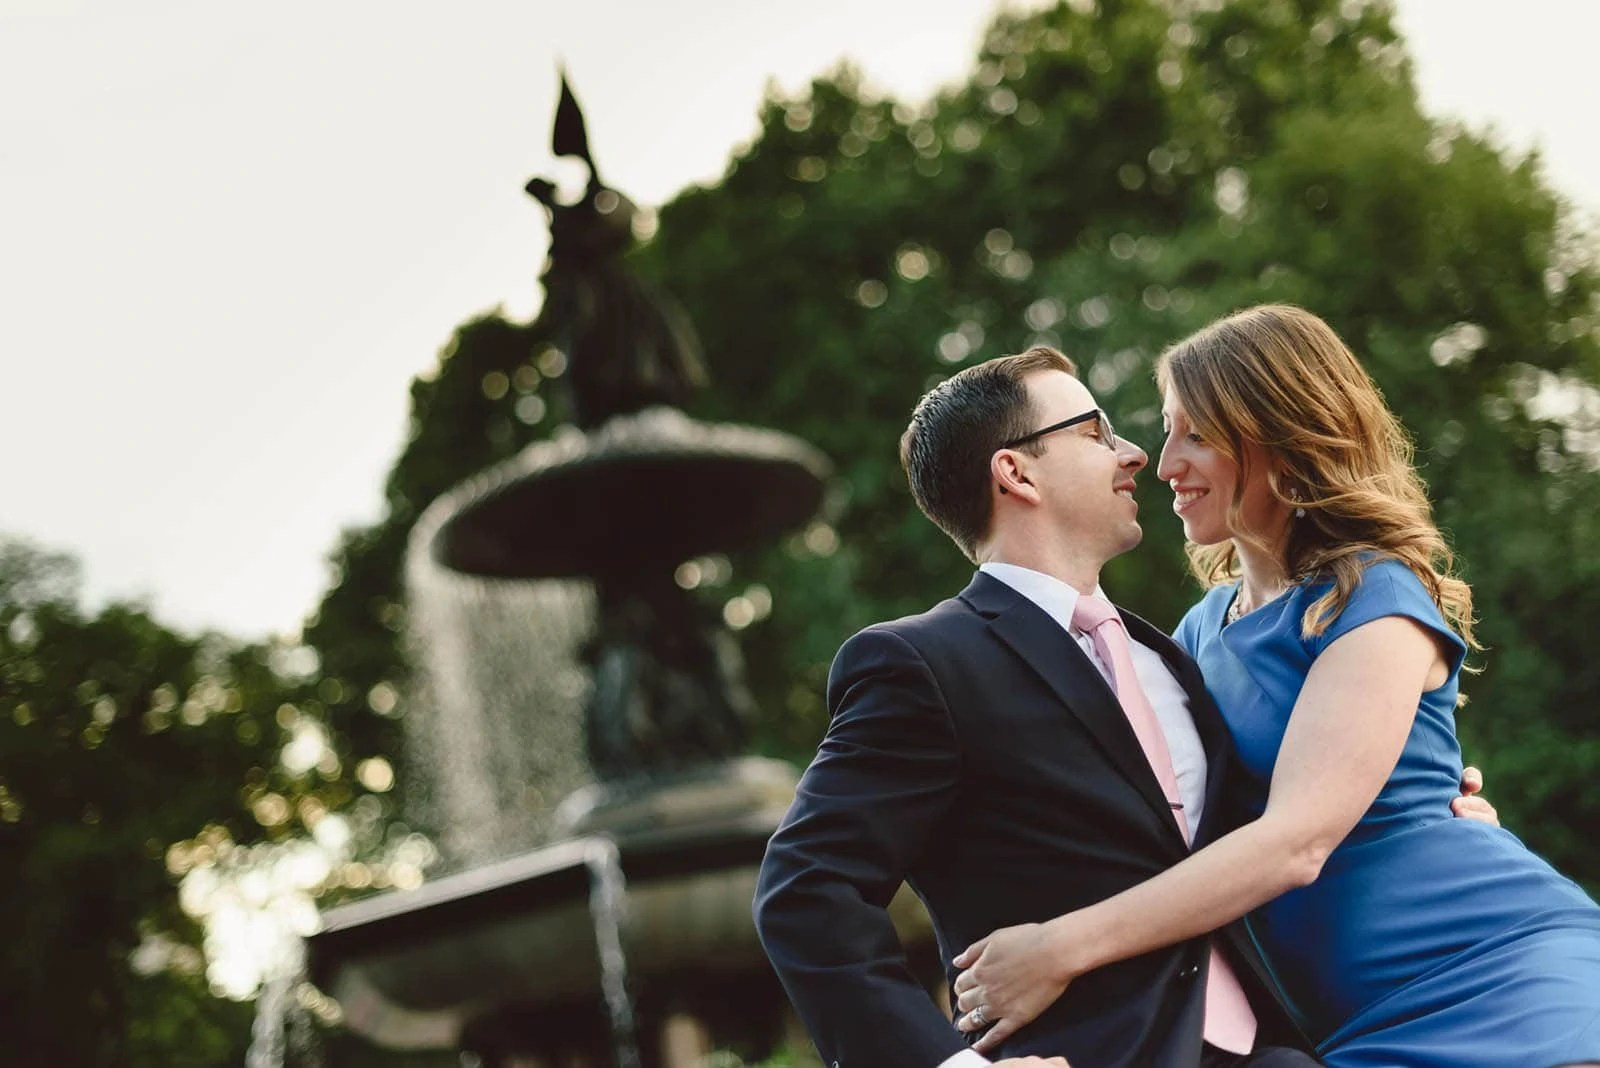 Central Park Bethesda Fountain Engagement Couple